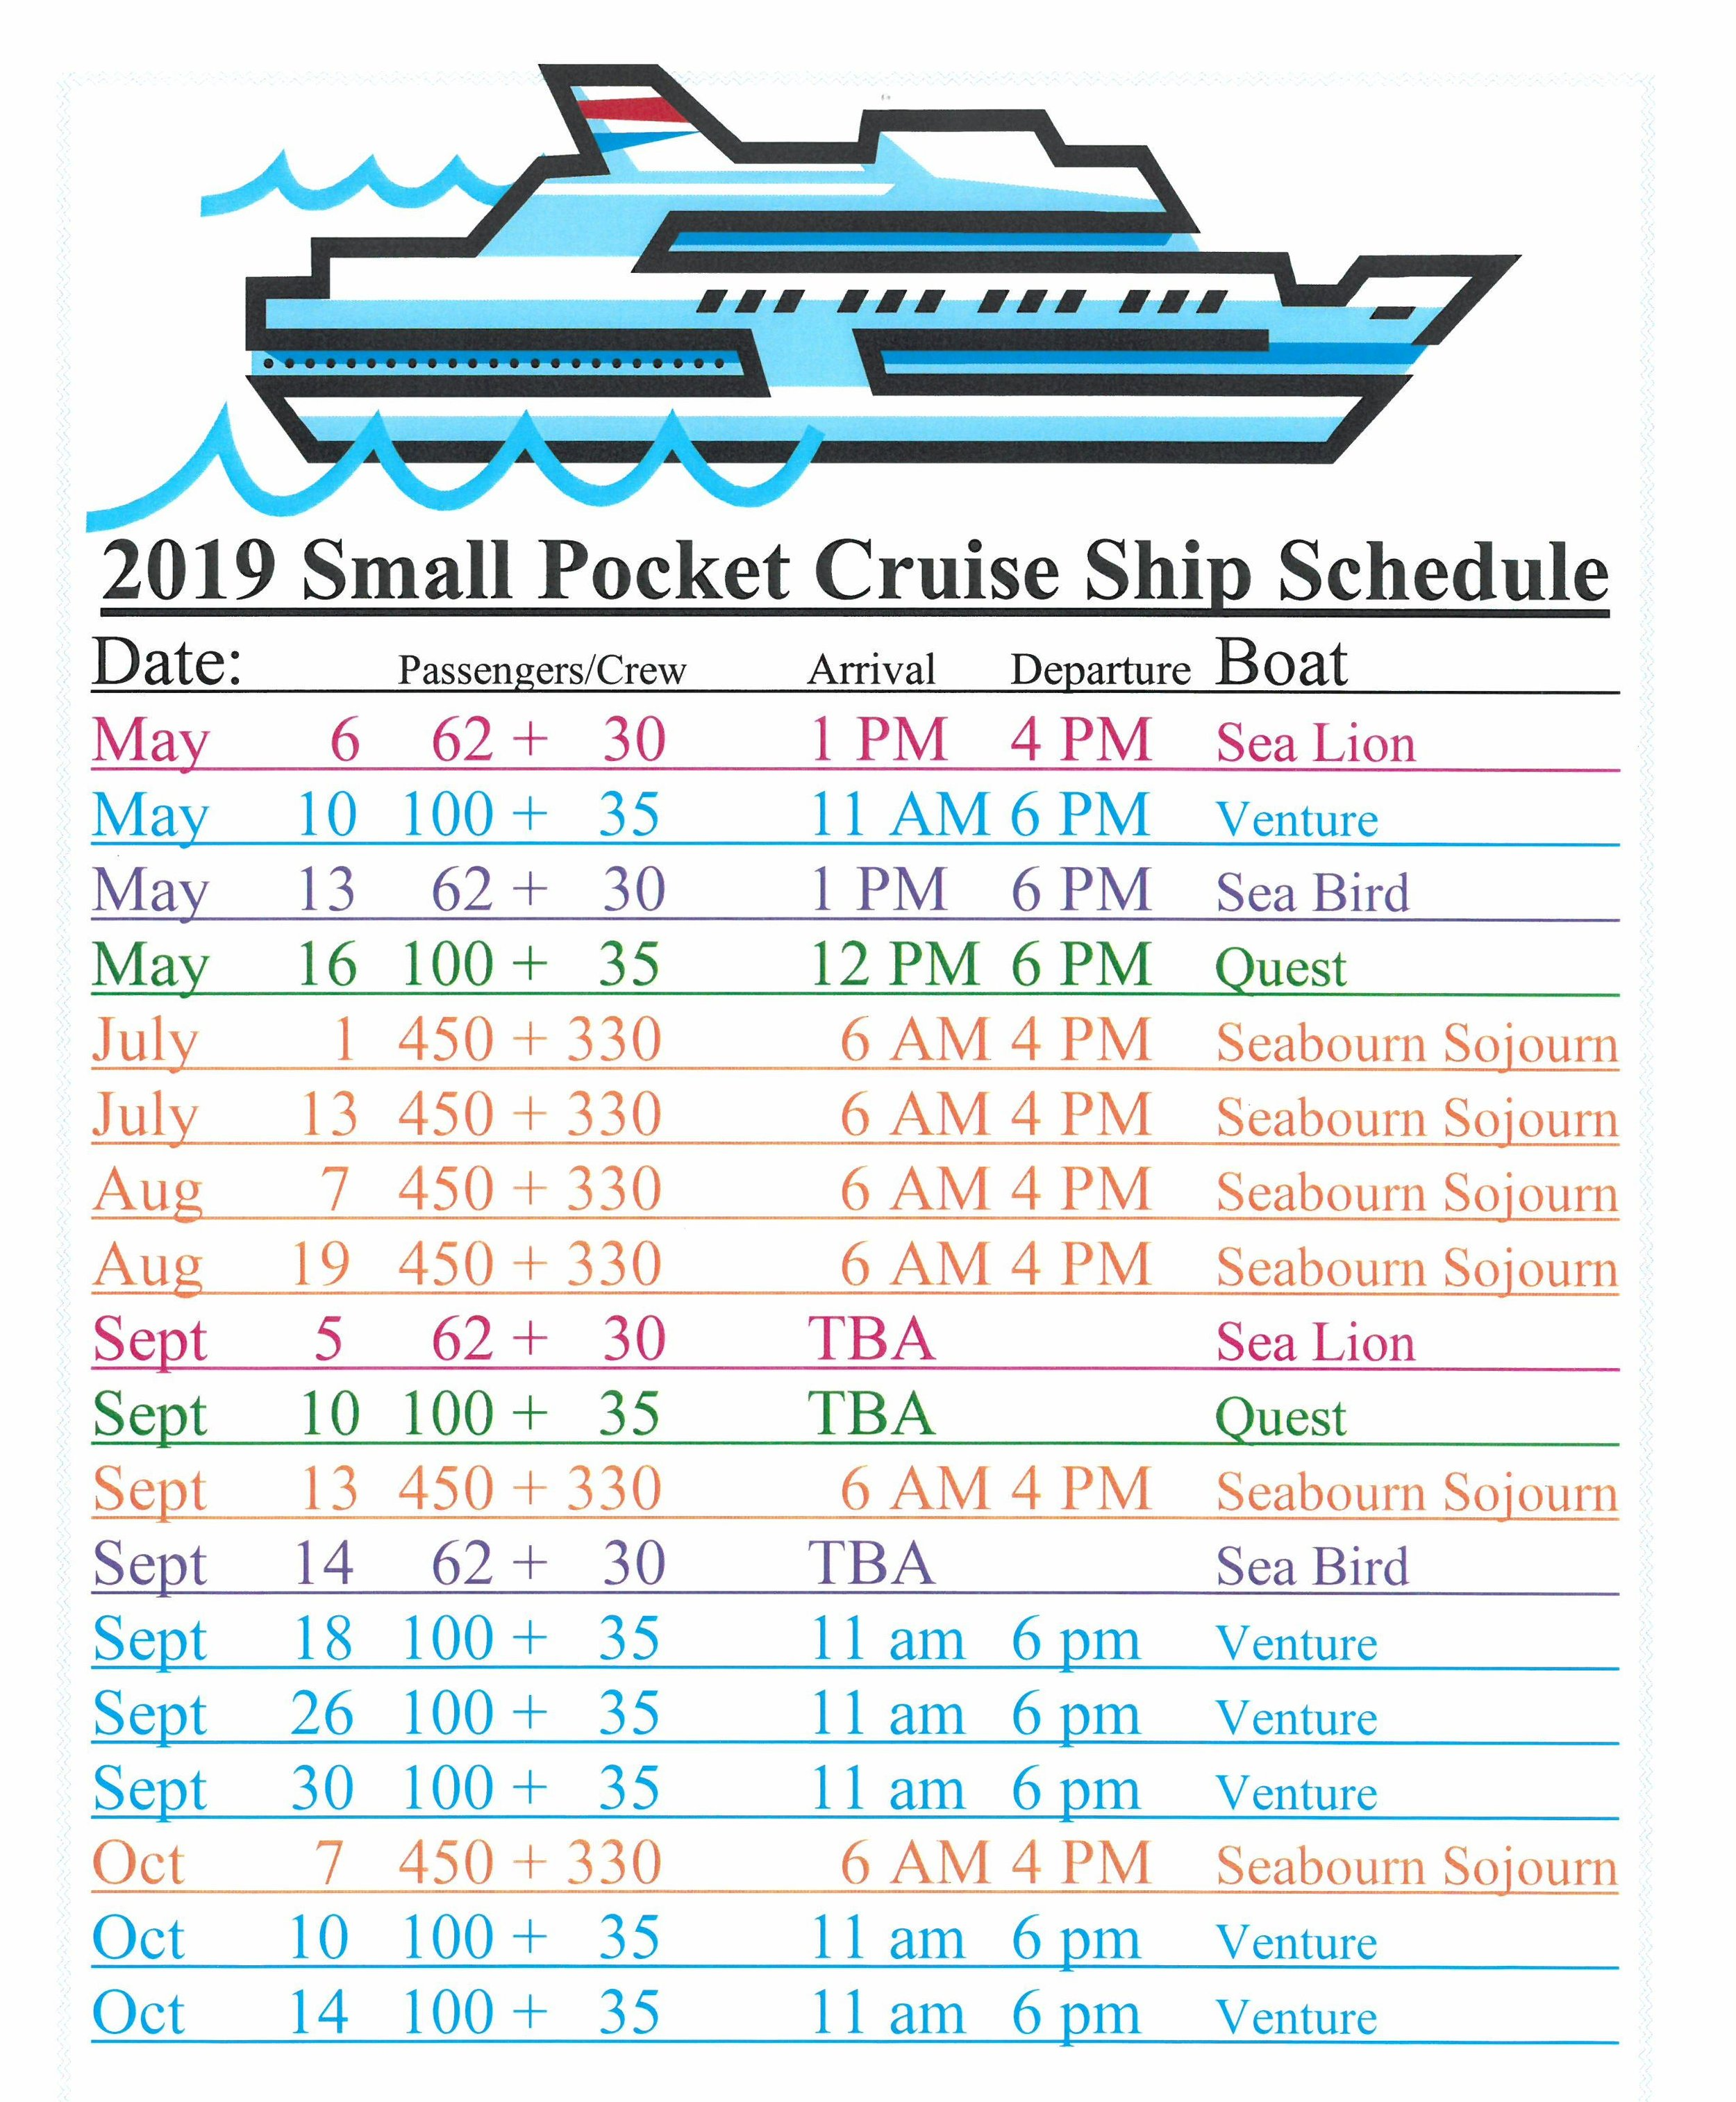 2019 Small Pocket Cruise Ship Schedule.jpg